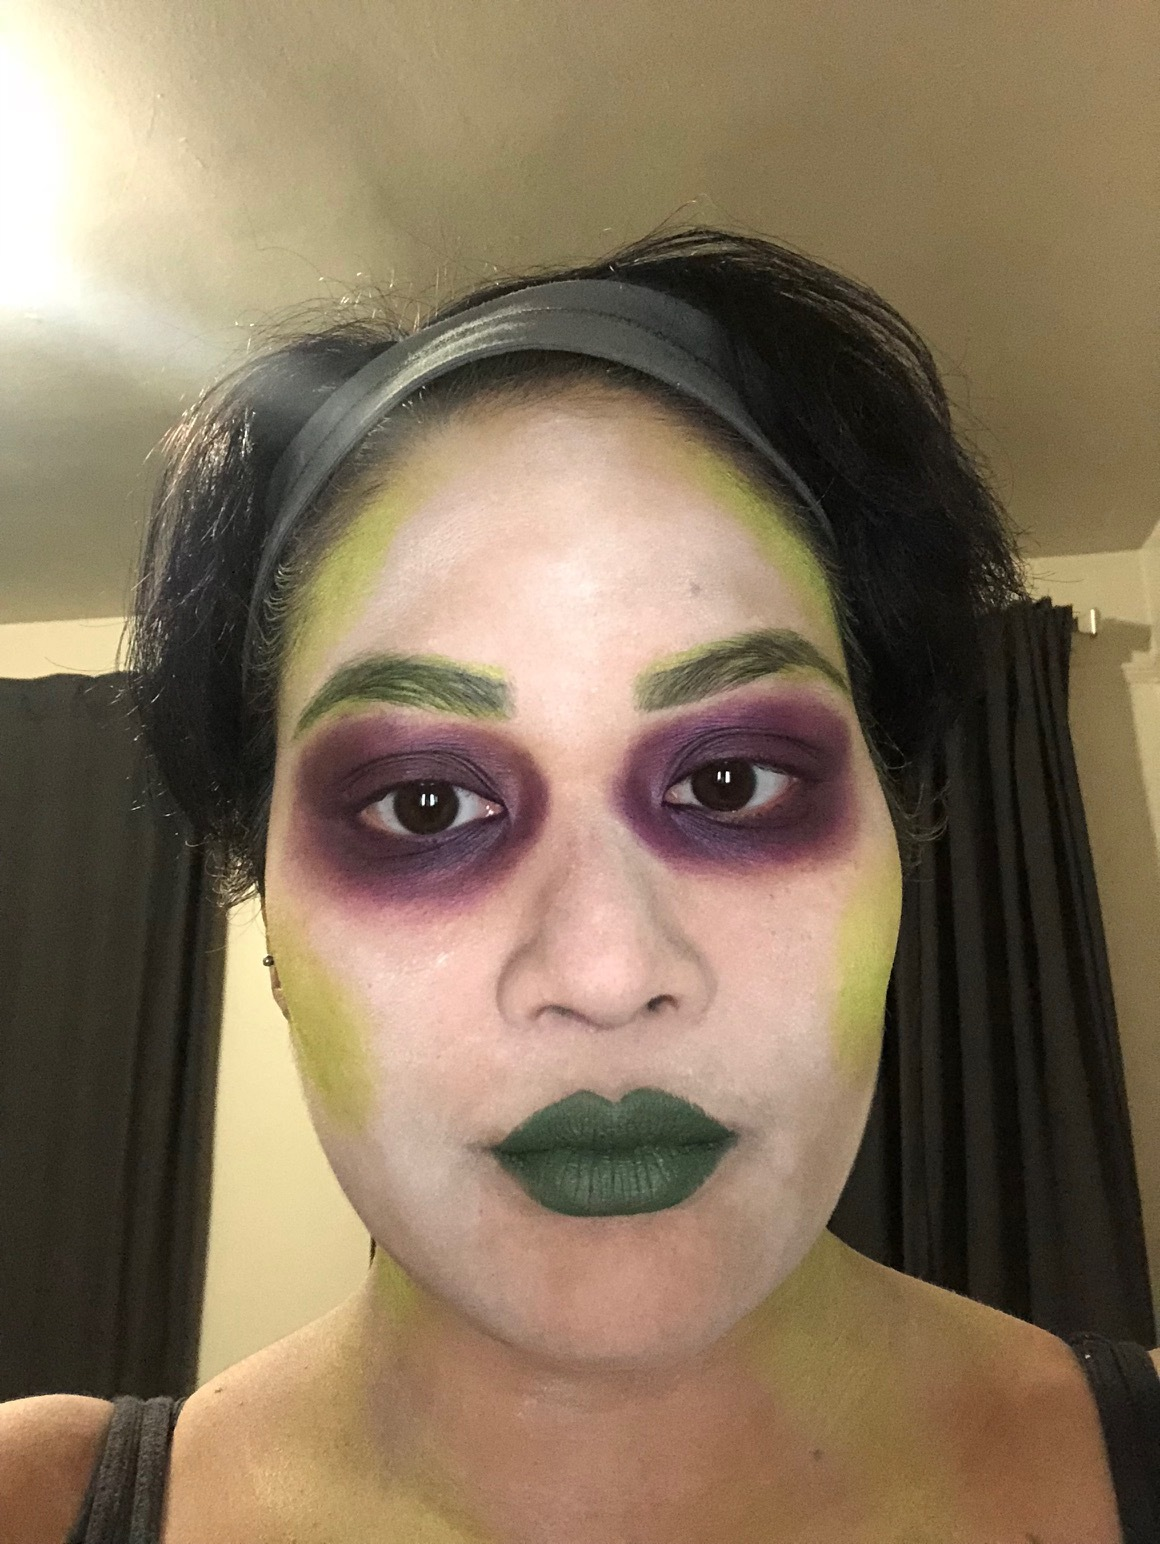 Just the makeup